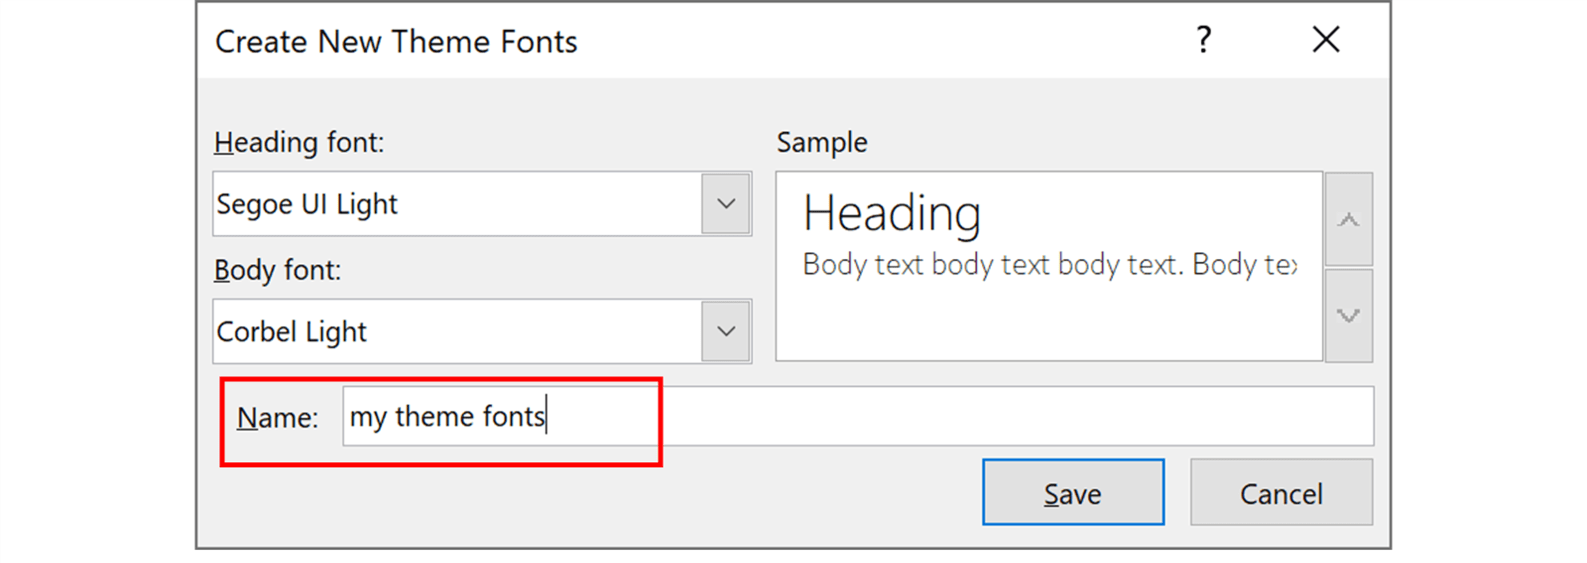 Screenshot showing the Create New theme Fonts pop up window in PowerPoint with the Name section highlighted